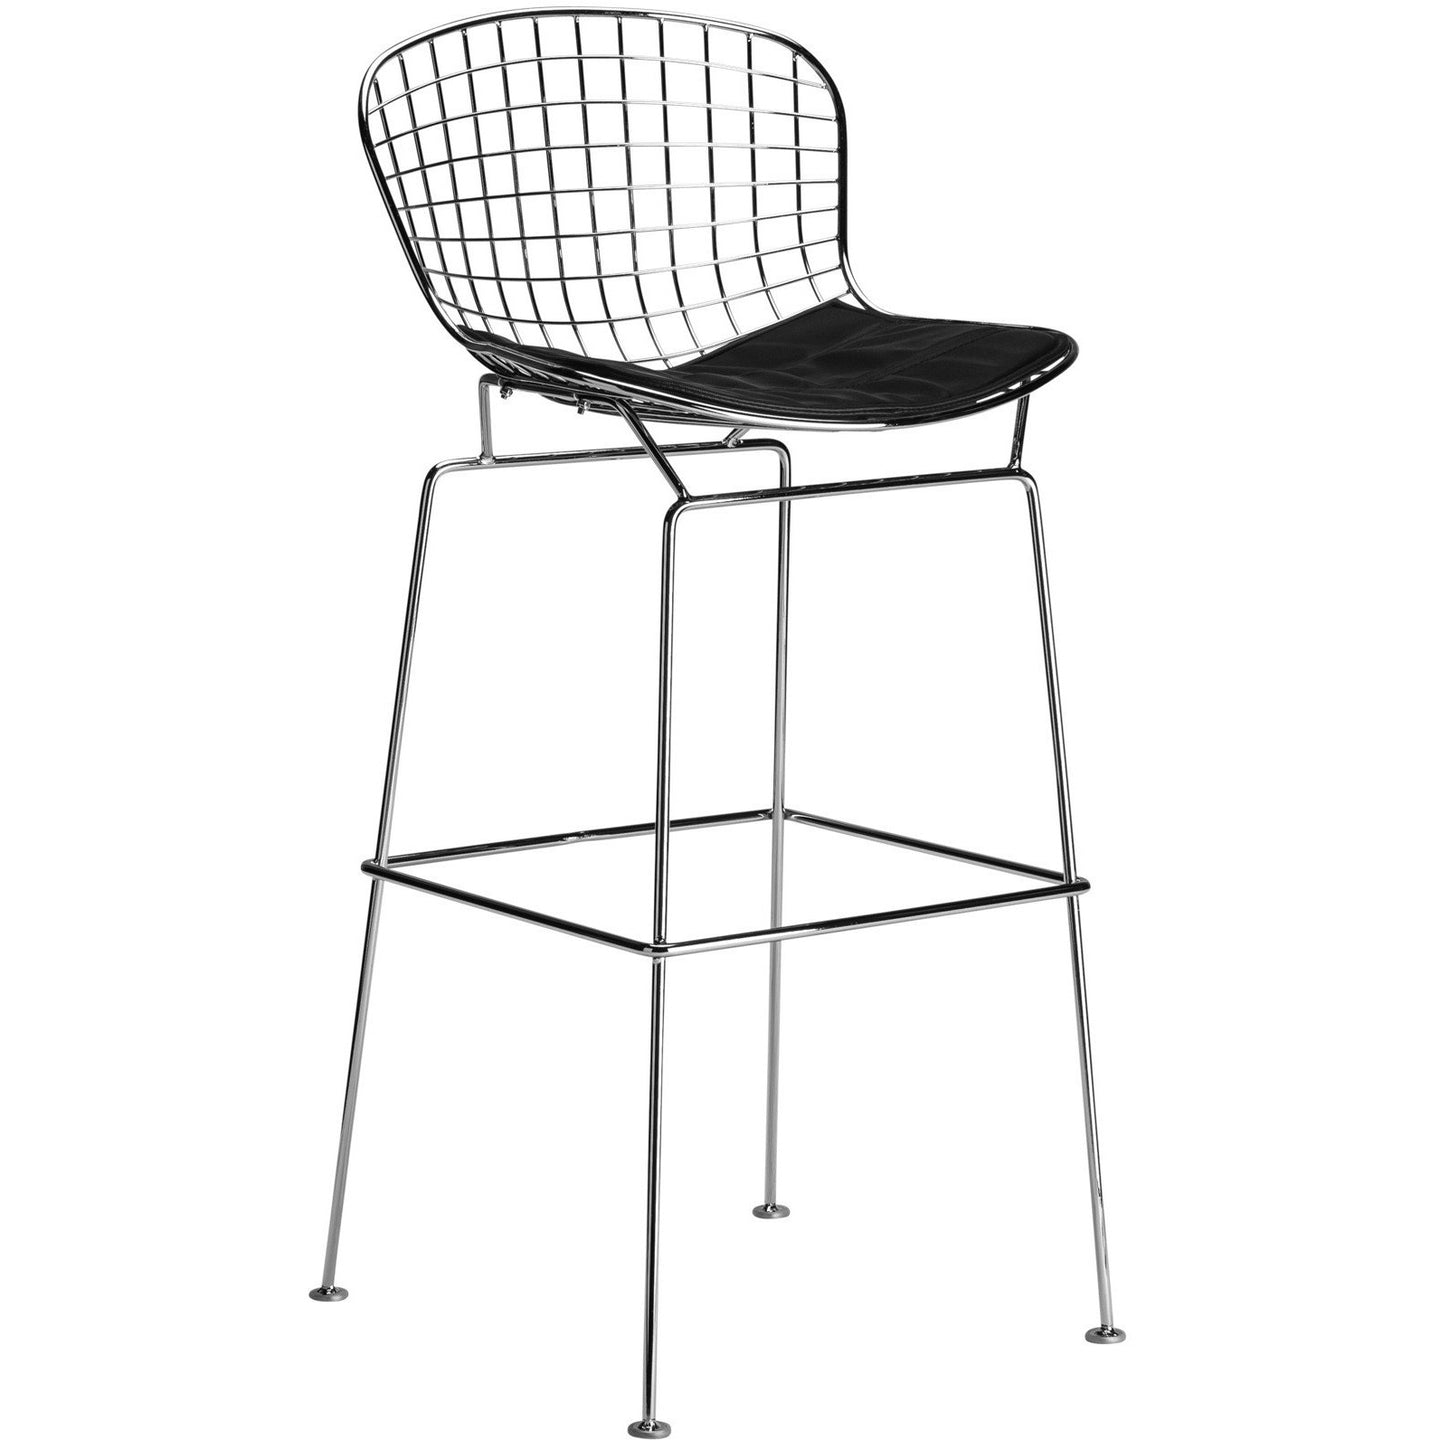 Lanna Furniture Pai Bar Stool Black, Bar Stools - Lanna Furniture, Minimal & Modern - 1